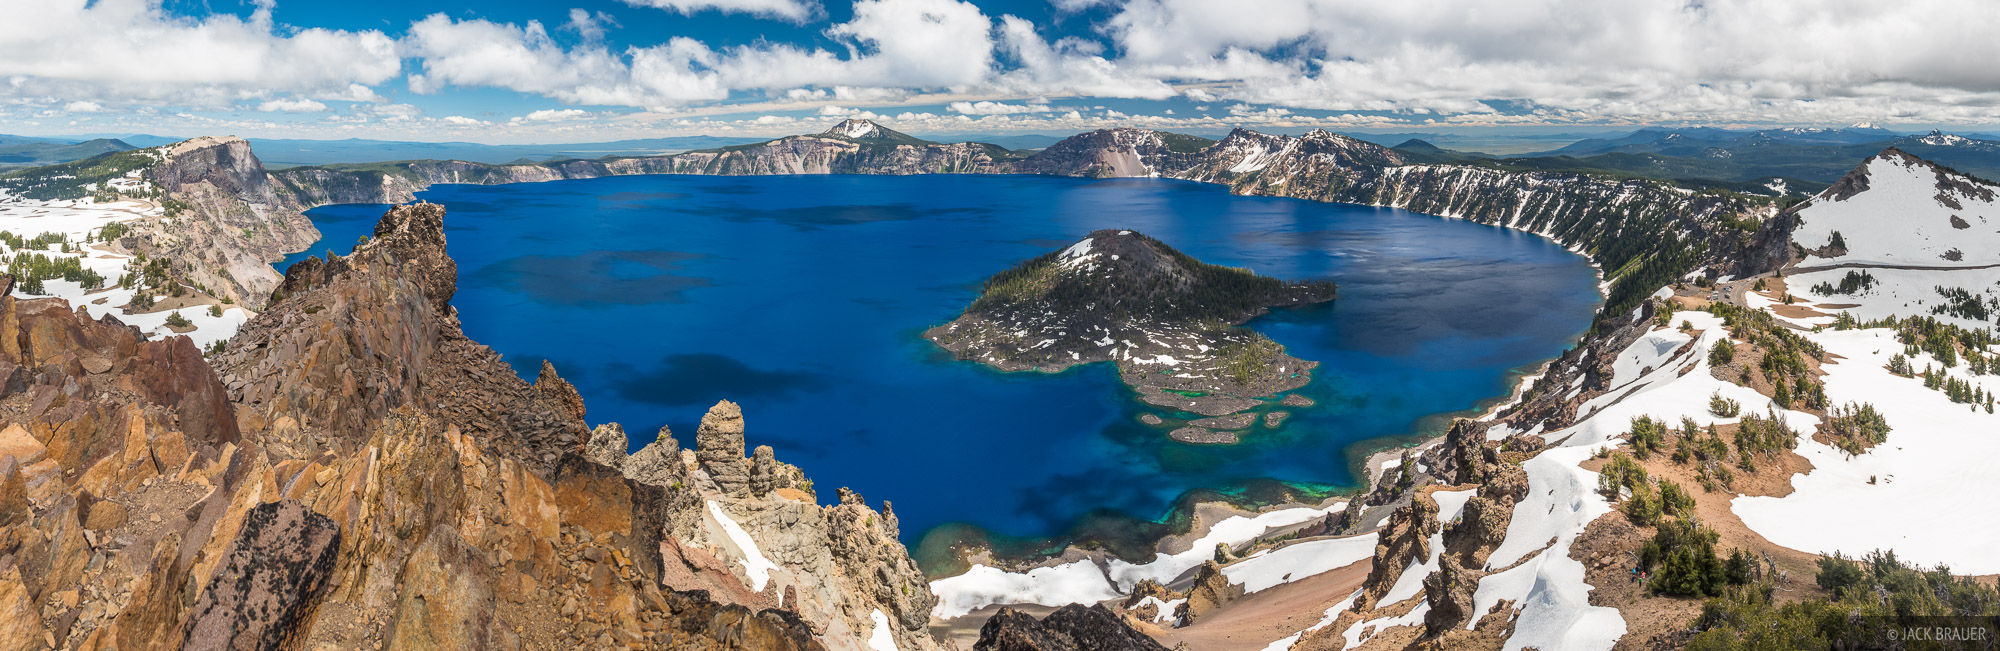 Crater Lake, Oregon, Crater Lake National Park, lake